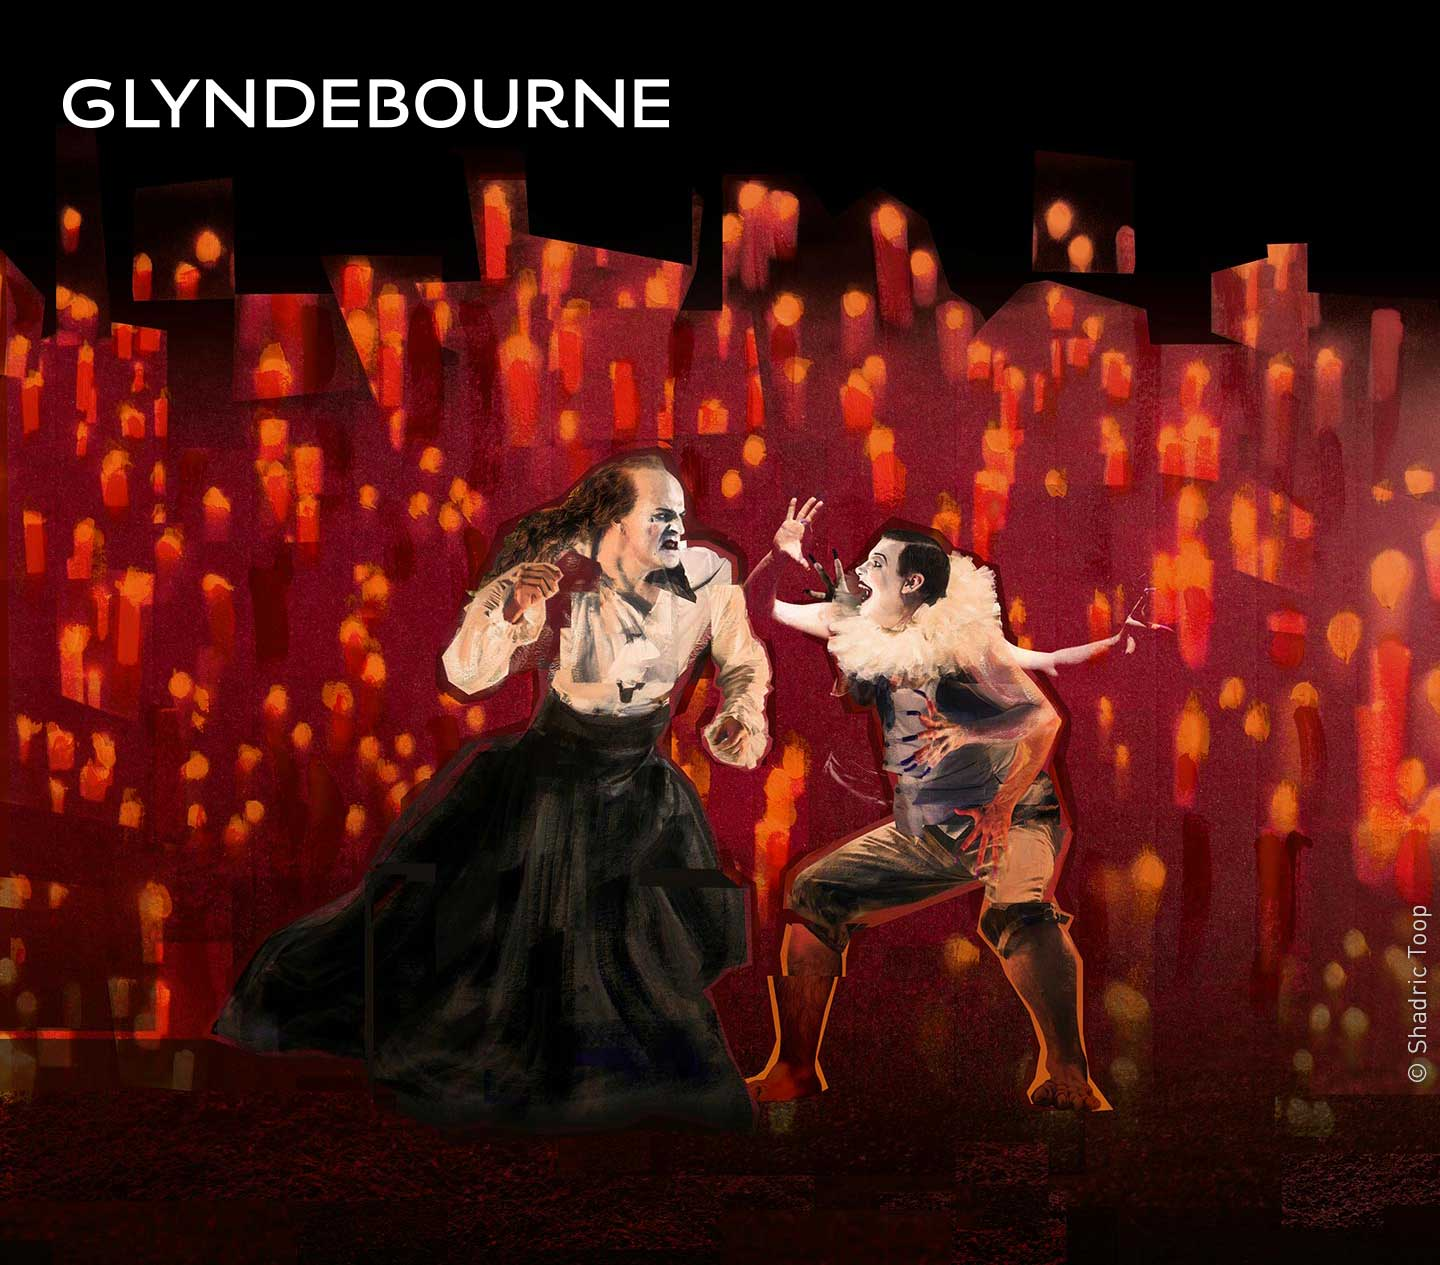 Glyndebourne Festival 2018 featuring characters from the opera Saul by George Frideric Handel - painted collage illustration by Shadric Toop